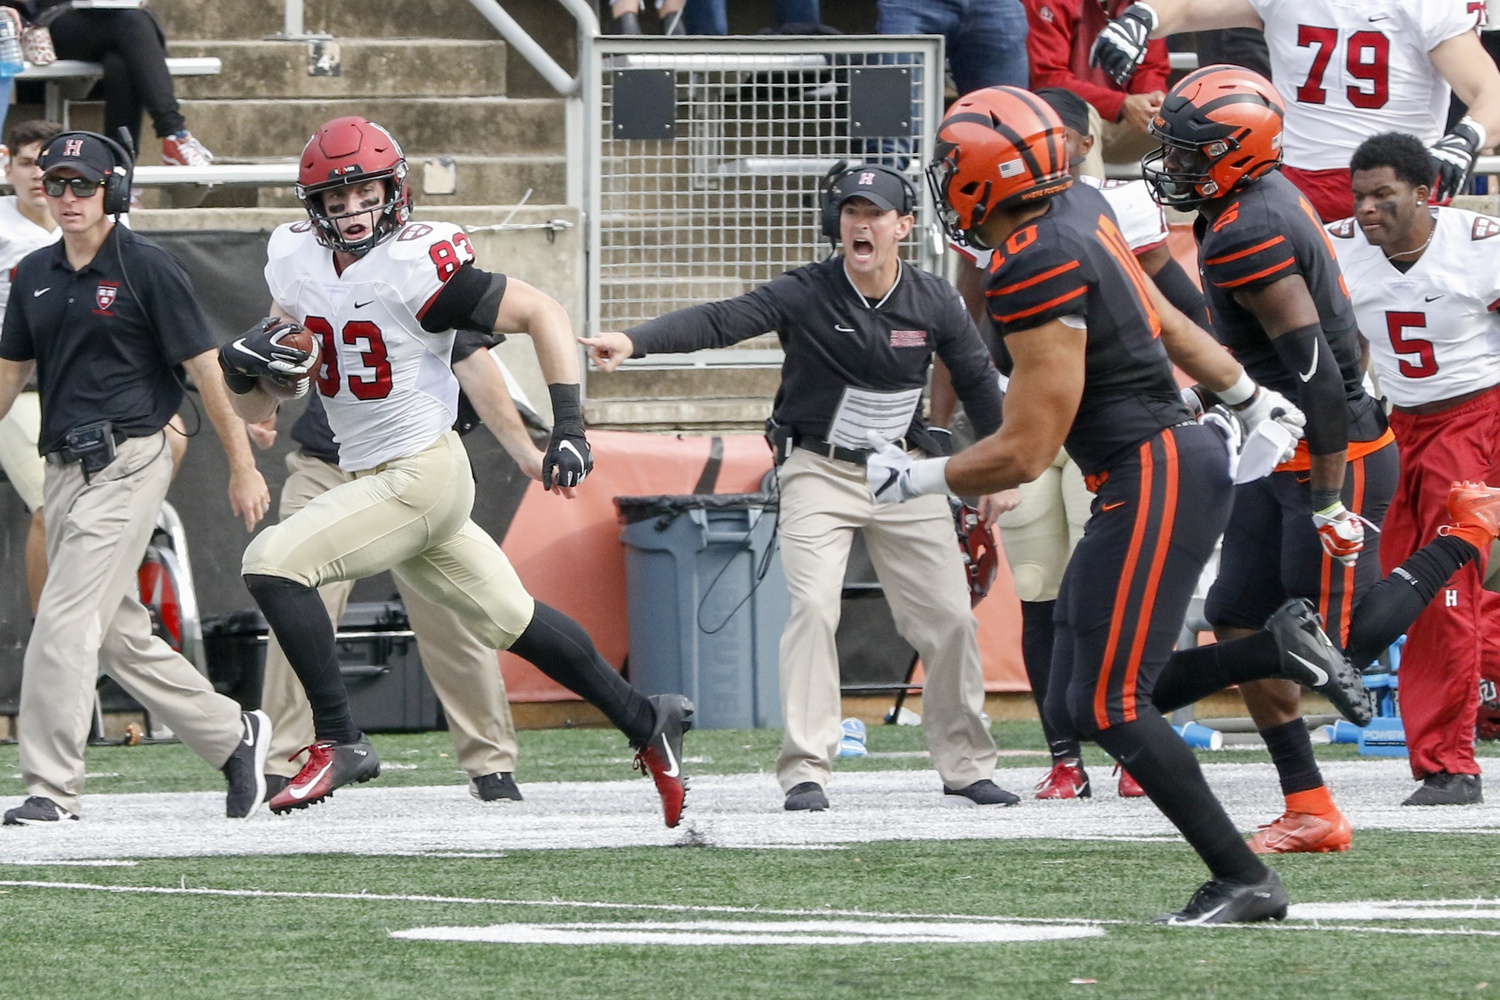 Senior wide receiver Jack Cook sprints for sprints past two defensive backs en route to a 73-yard score. The touchdown put Harvard in the lead for the first time against the Tigers since 2016.